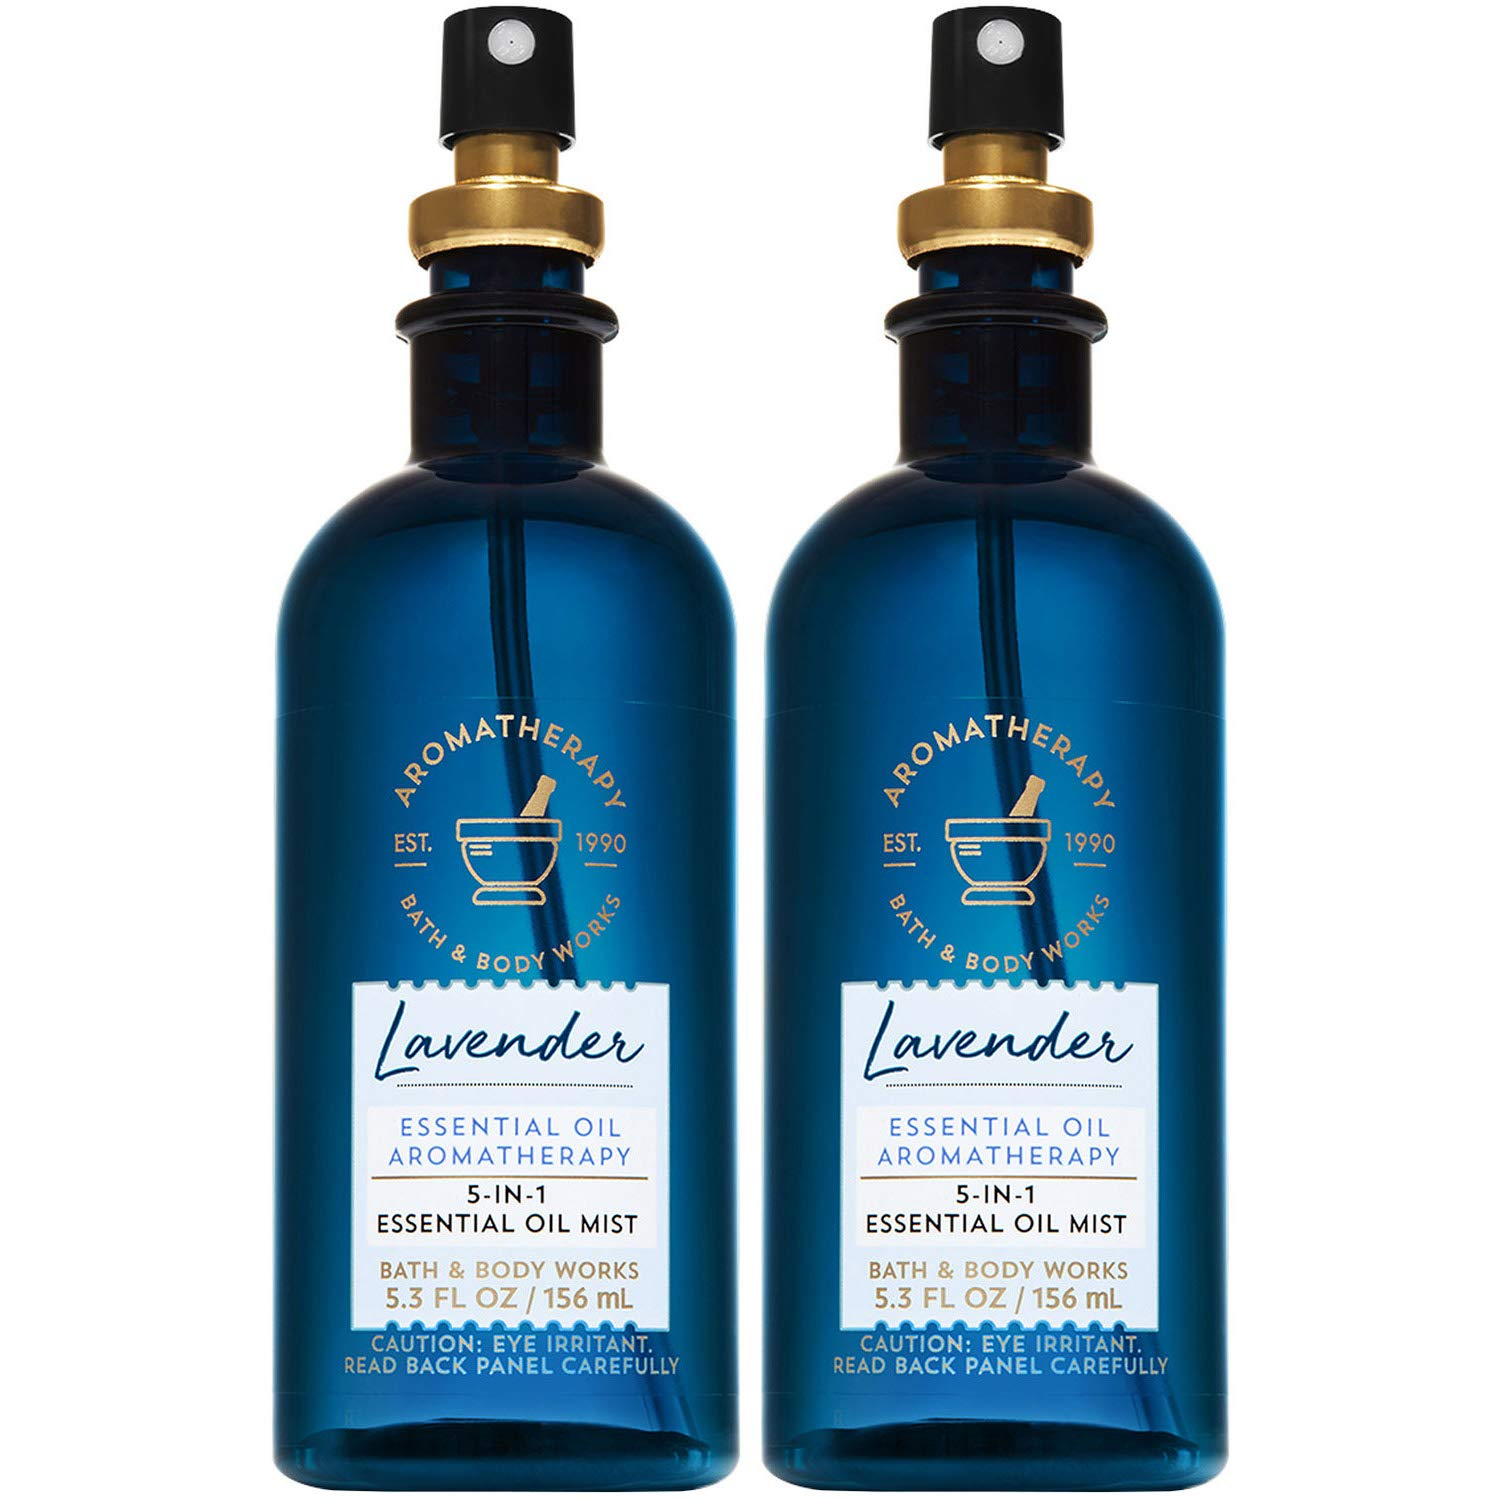 Bath and Body Works Aromatherapy LAVENDER 5-in-1 Essential Oil Mist 5.3 Fluid Ounce, 2-Pack by Bath & Body Works